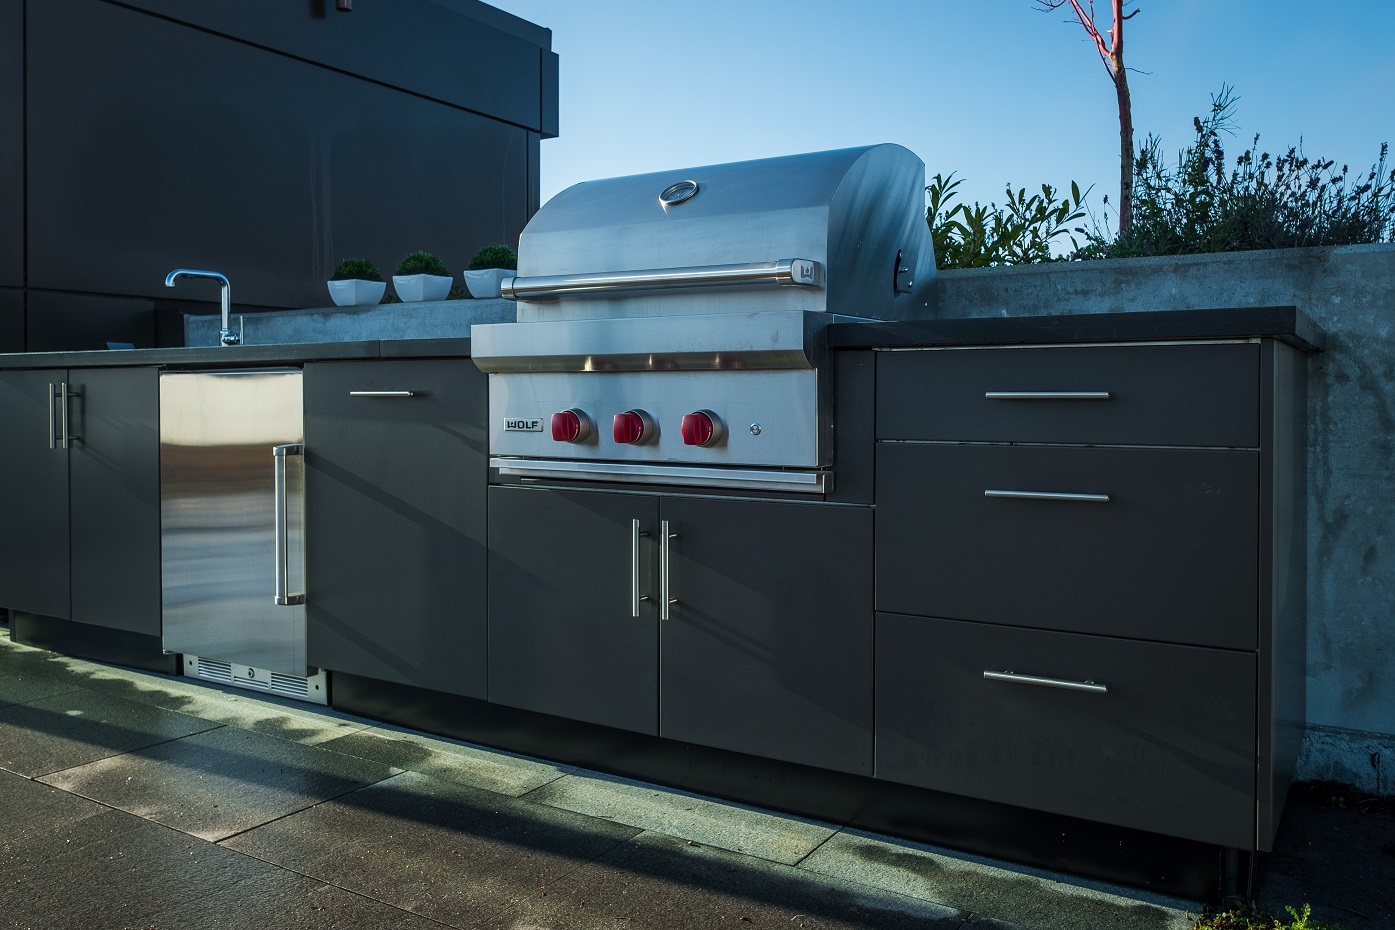 Sherwood Outdoor Kitchens, Vancouver, West 5th - 502 (5).jpg